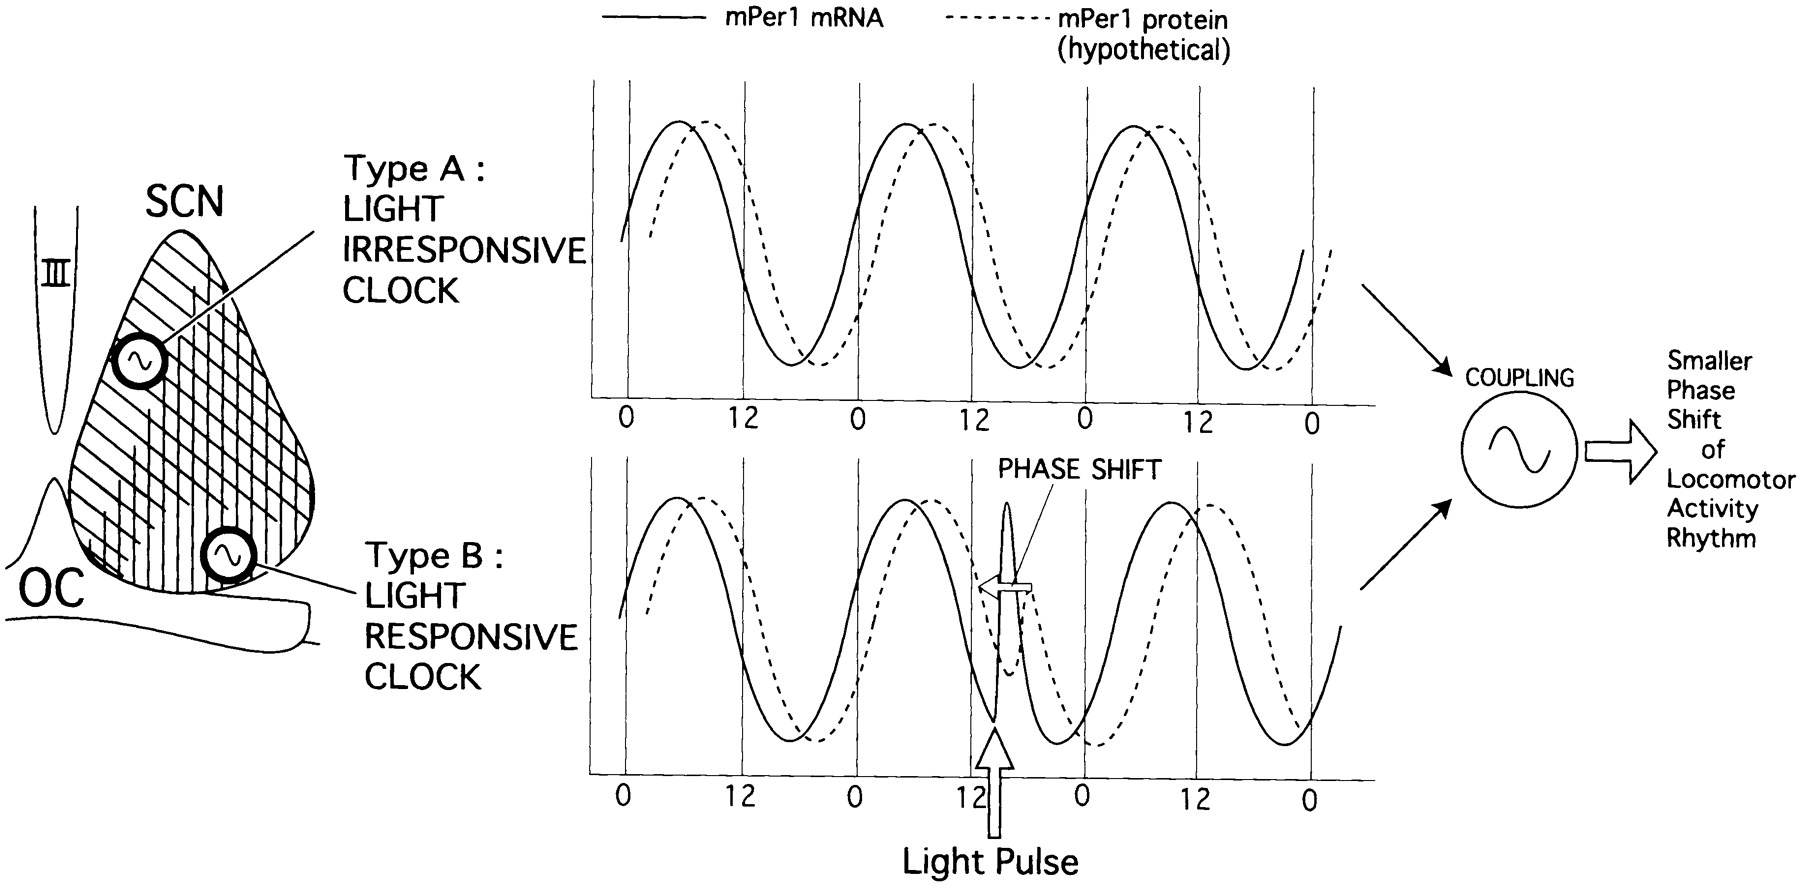 Light Induced Resetting Of A Mammalian Circadian Clock Is Associated With Rapid Induction Of The